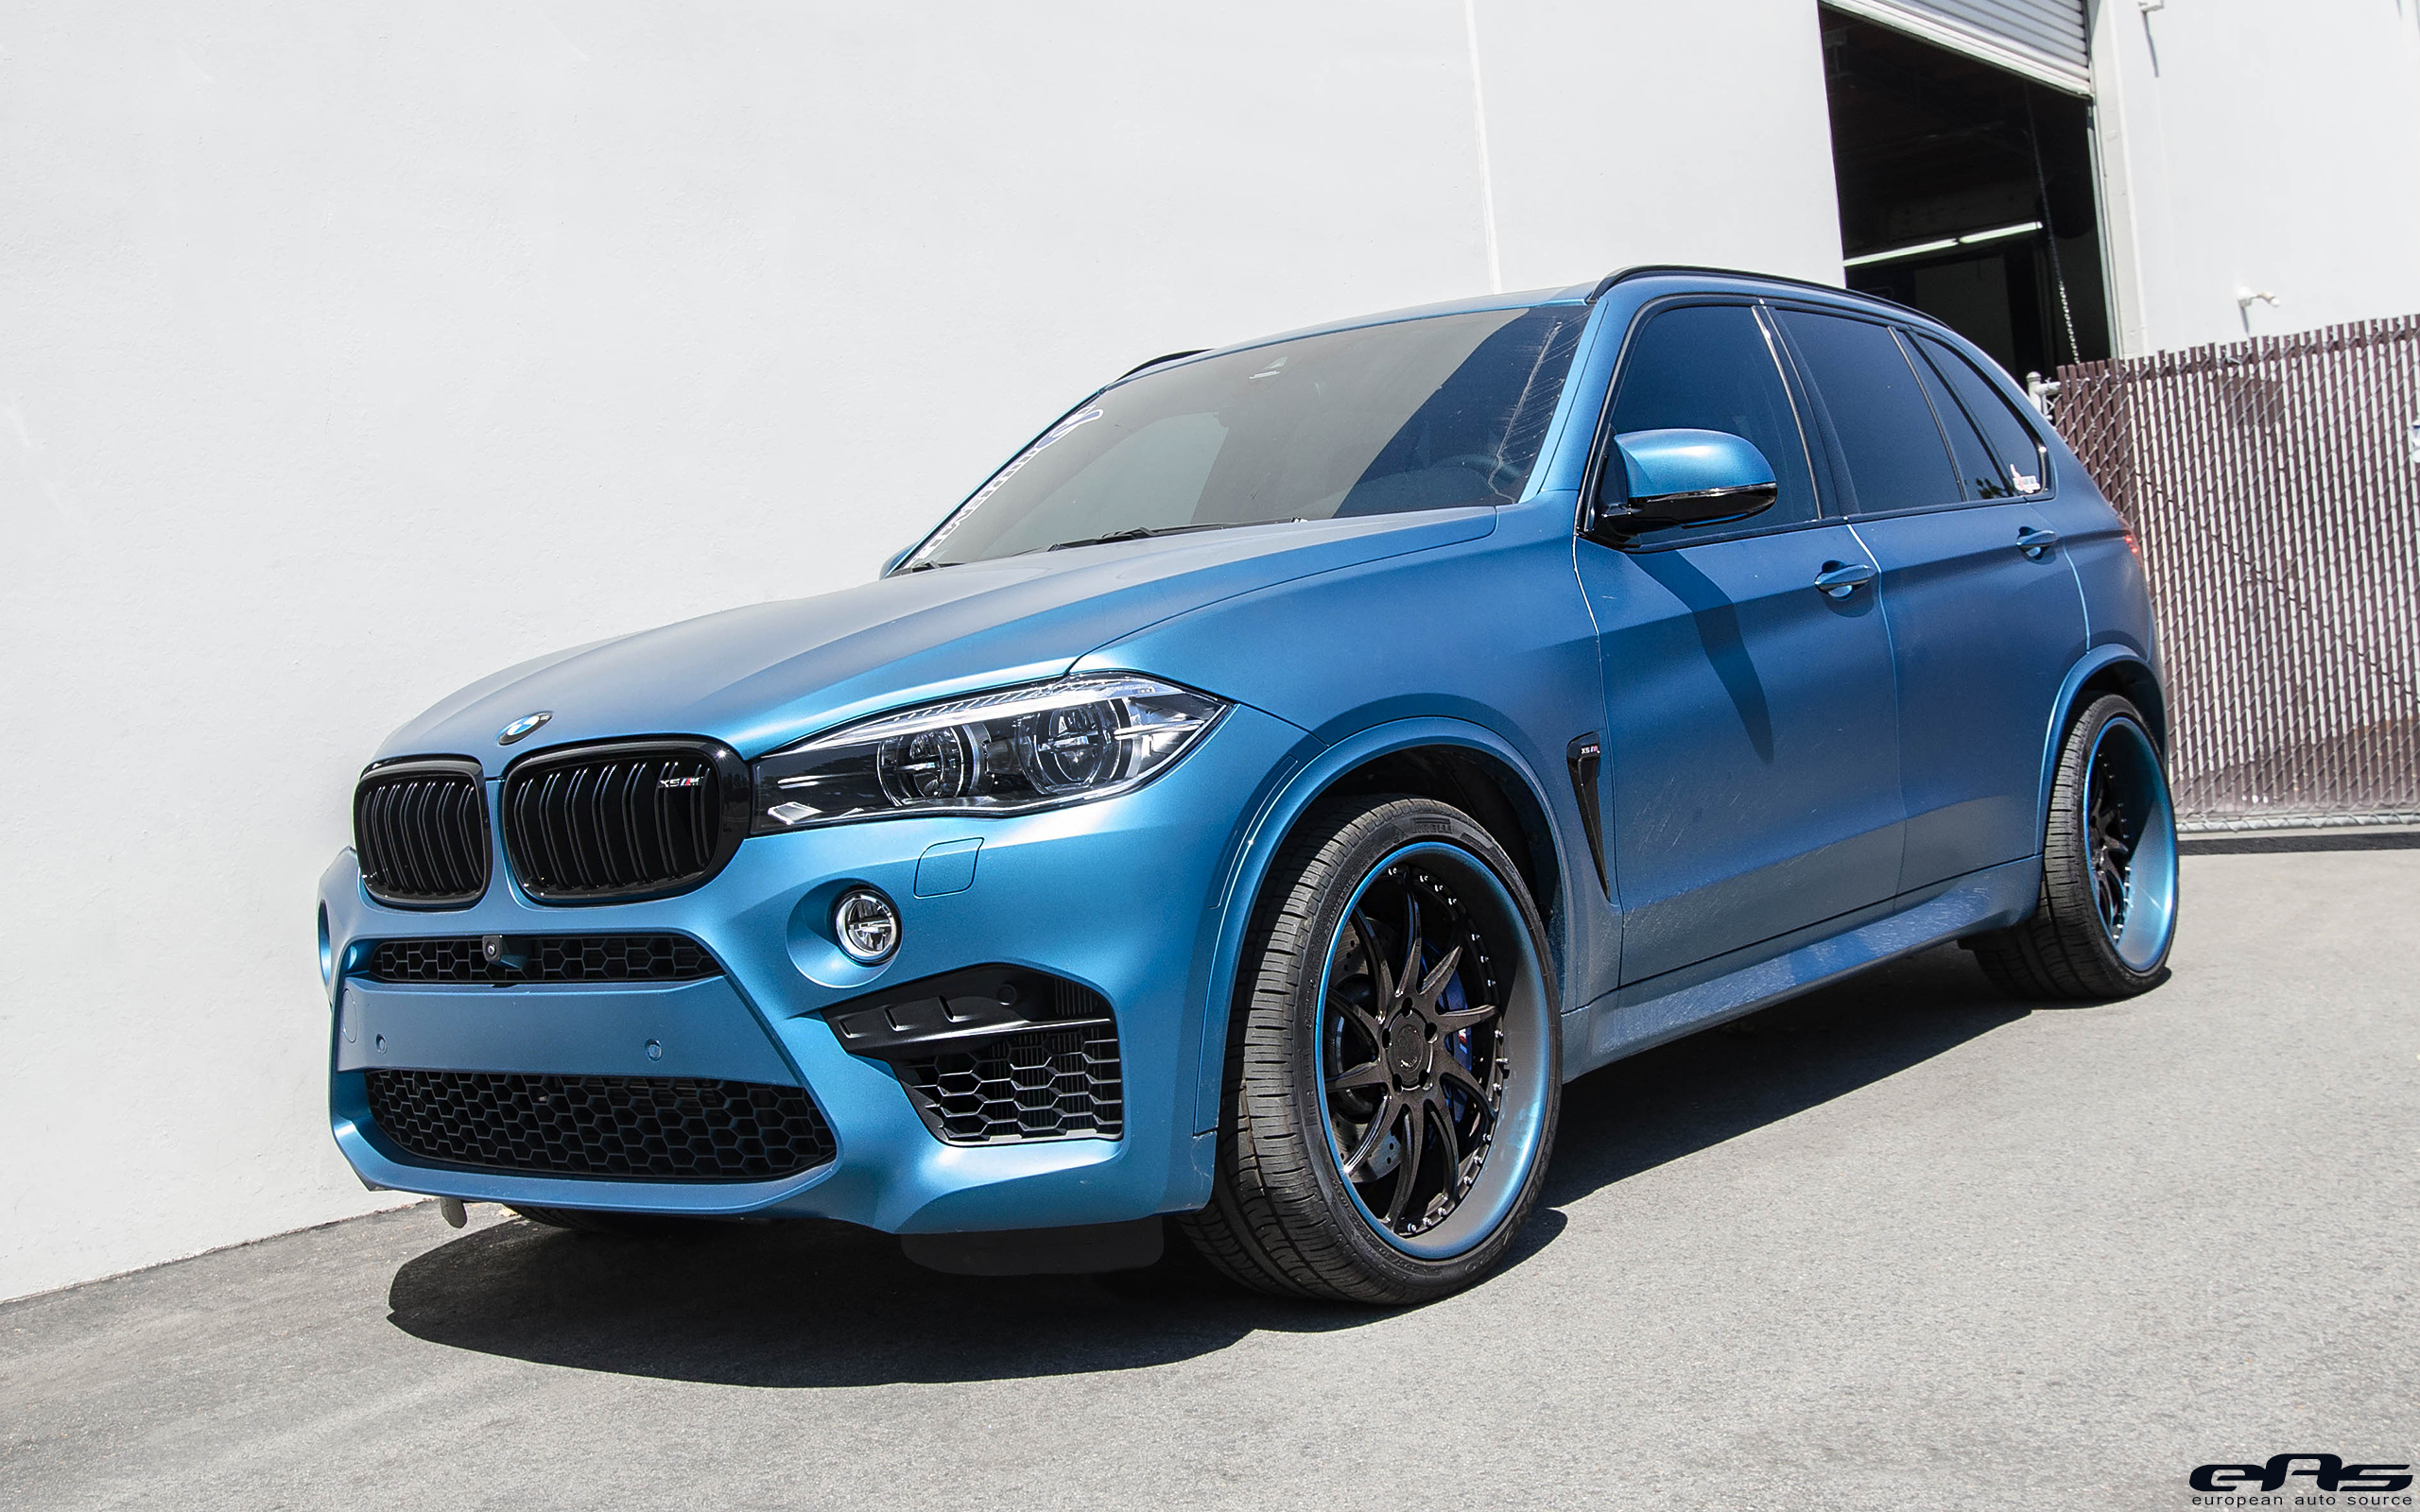 Matte Bluw BMW X5 M Build Showcase 11